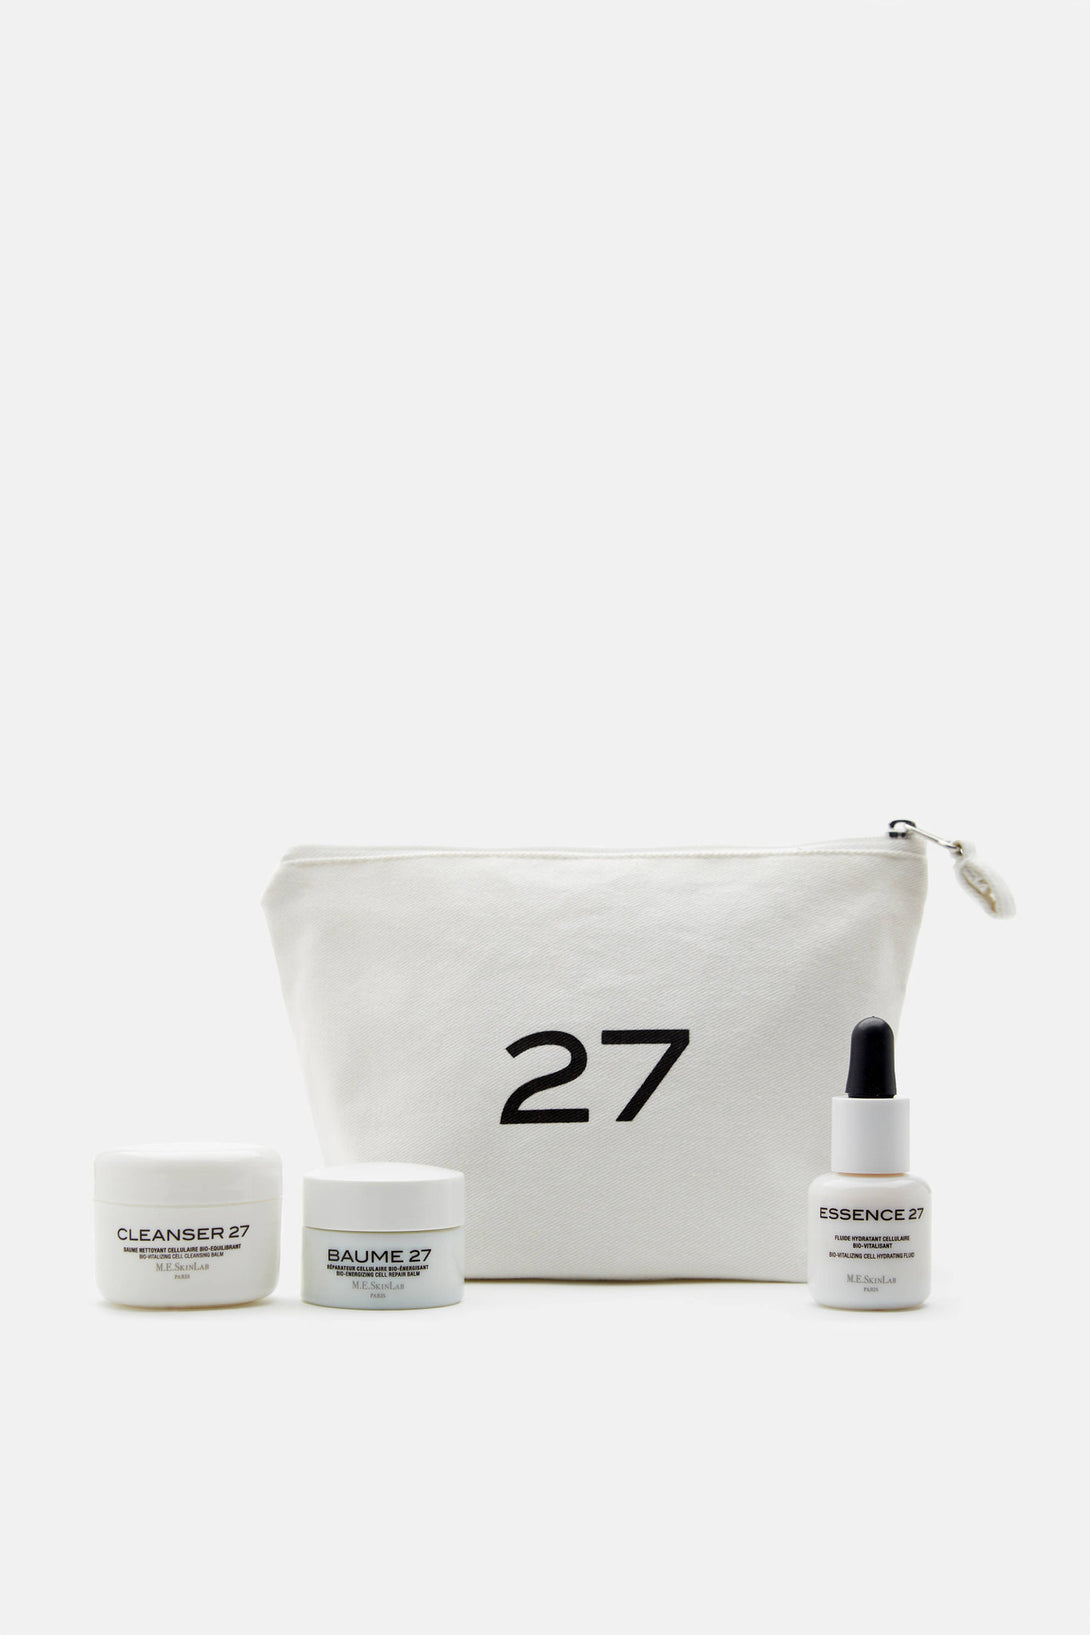 Travel Set - Baume 27, Cleanser 27, Essence 27